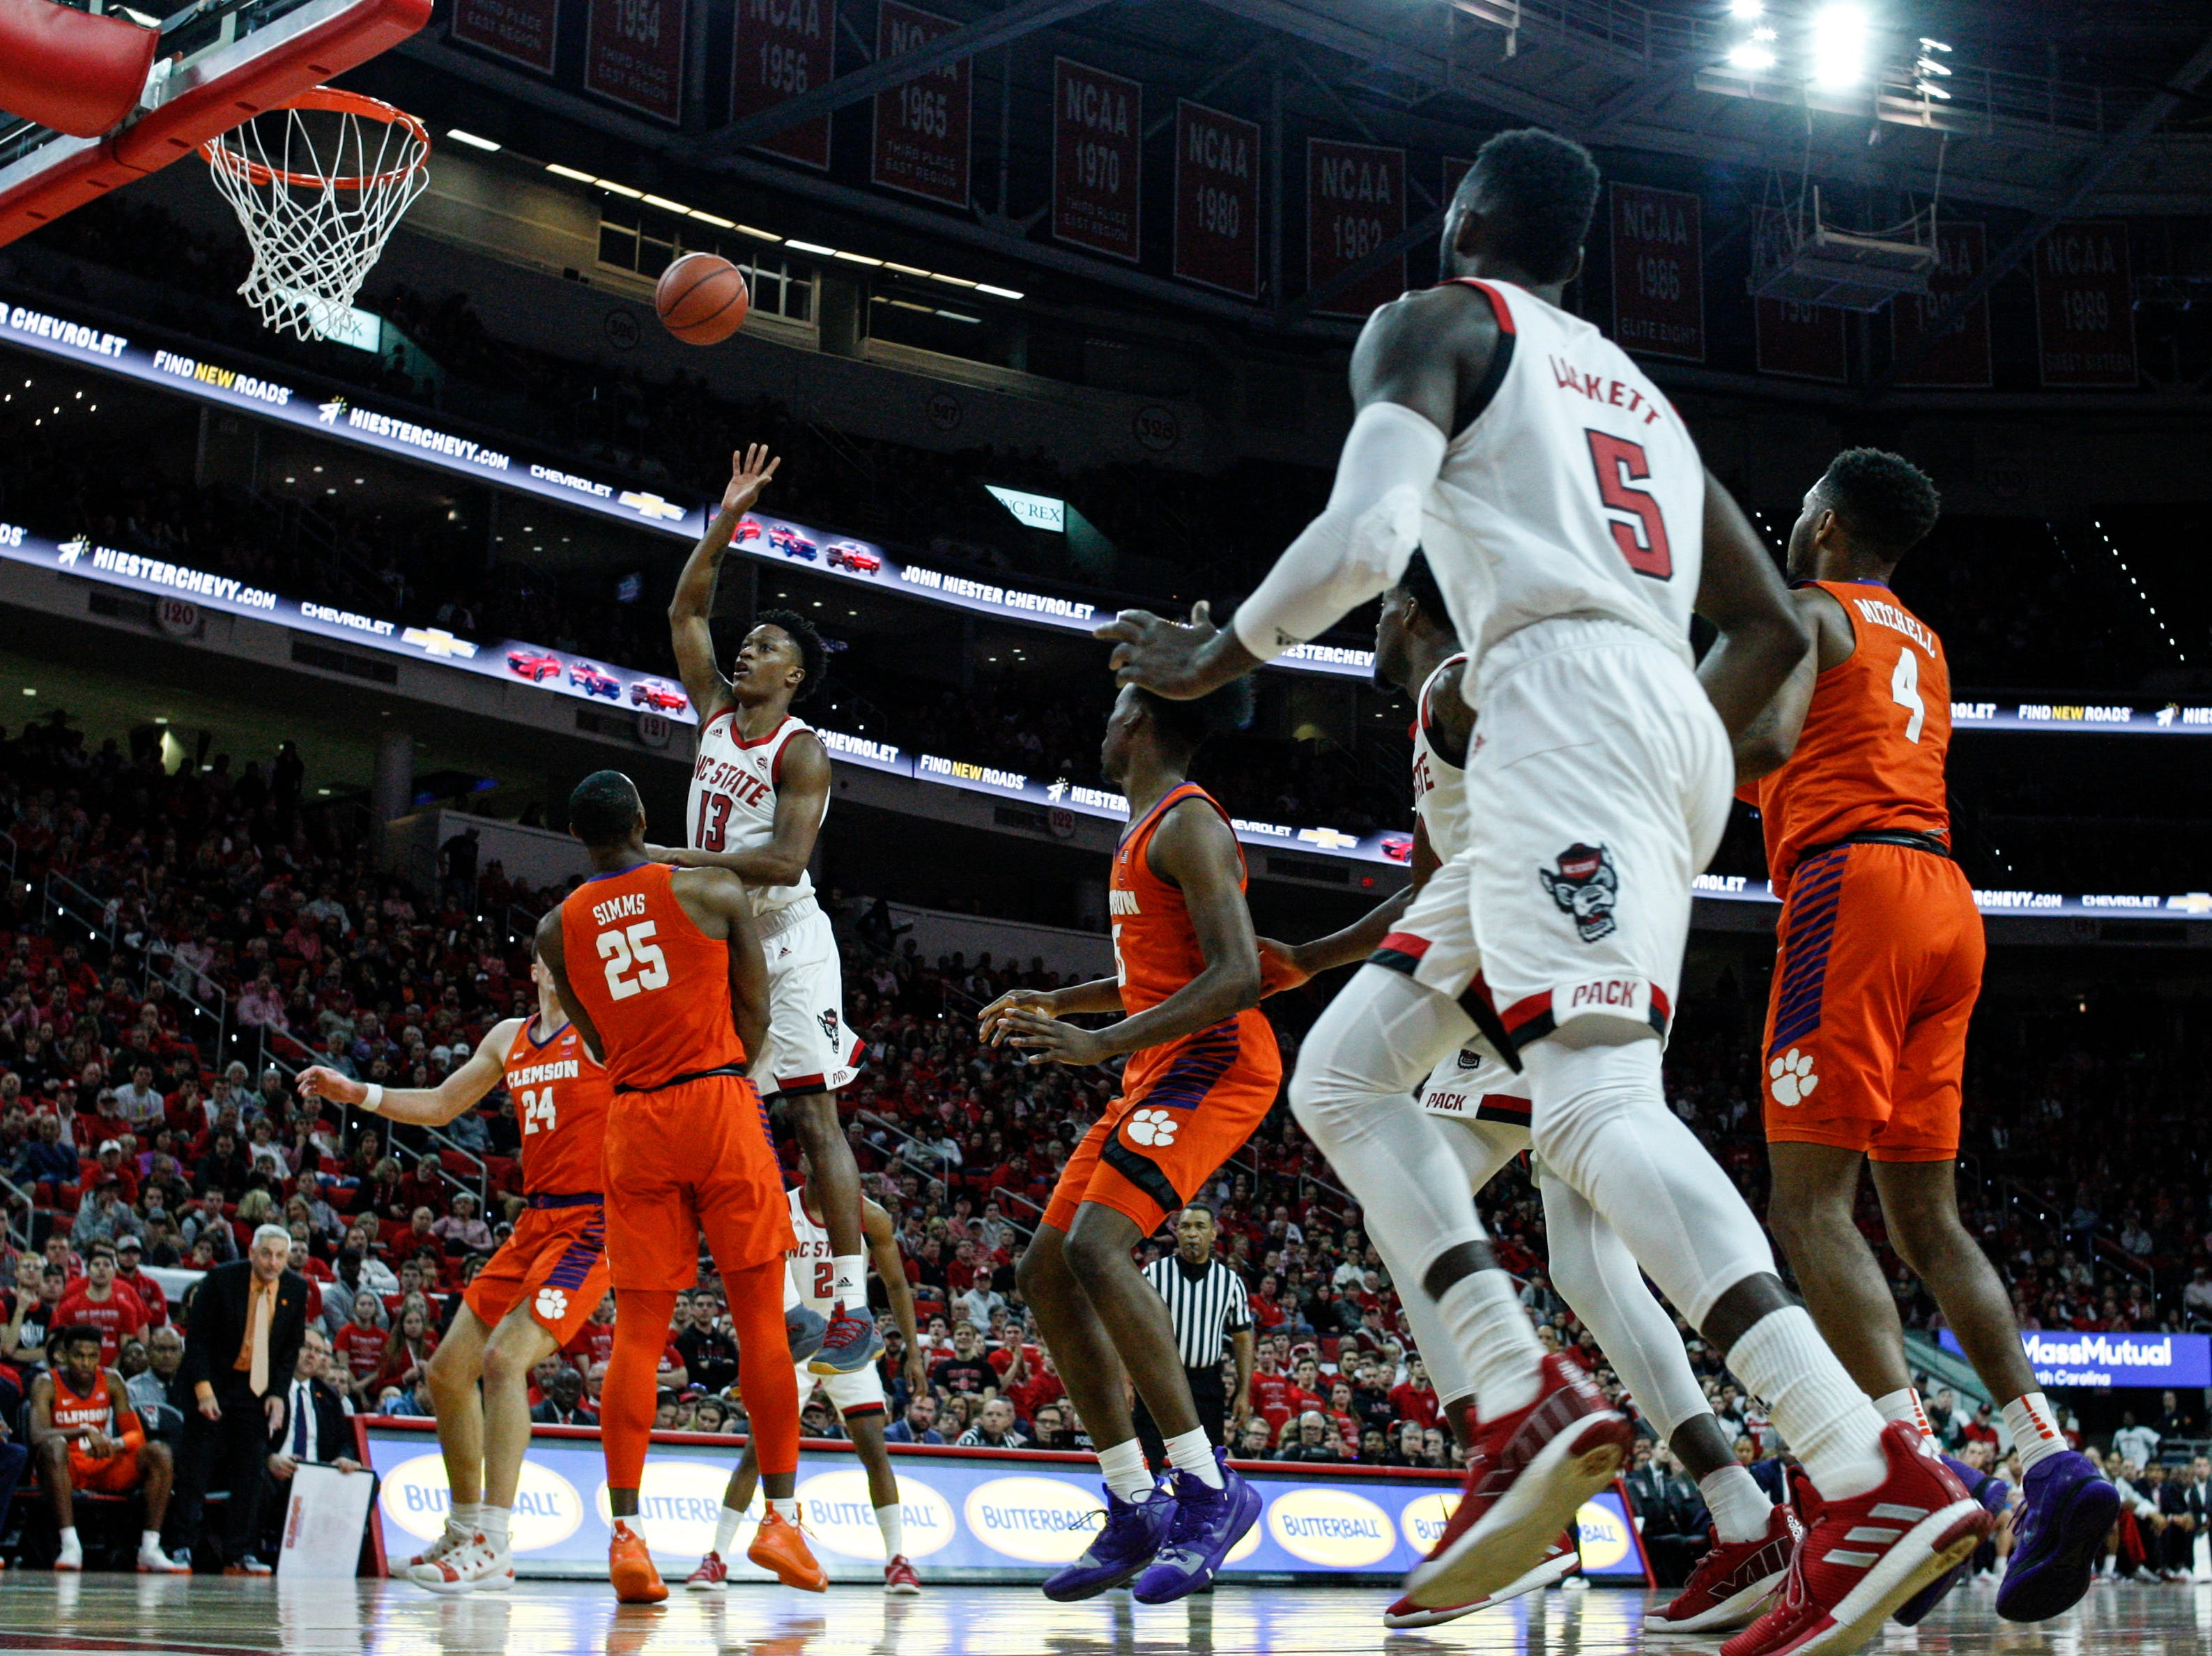 Jan 26, 2019; Raleigh, NC, USA; North Carolina State Wolfpack guard C.J. Bryce (13) shoots the ball over Clemson Tigers forward Aamir Simms (25) in the first half at PNC Arena. Mandatory Credit: Nell Redmond-USA TODAY Sports